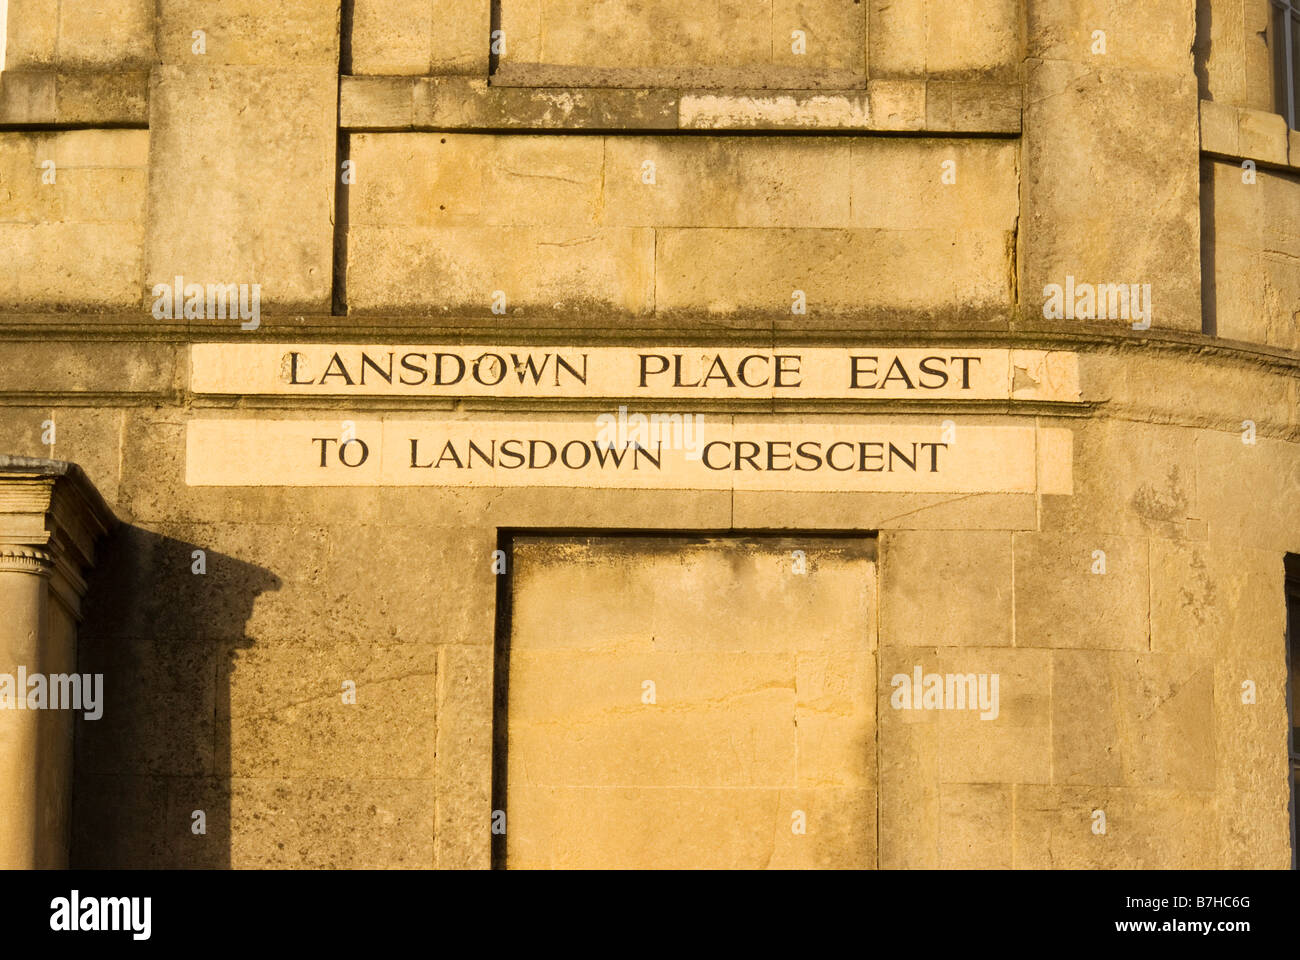 Lansdown place East road name, Bath - Stock Image